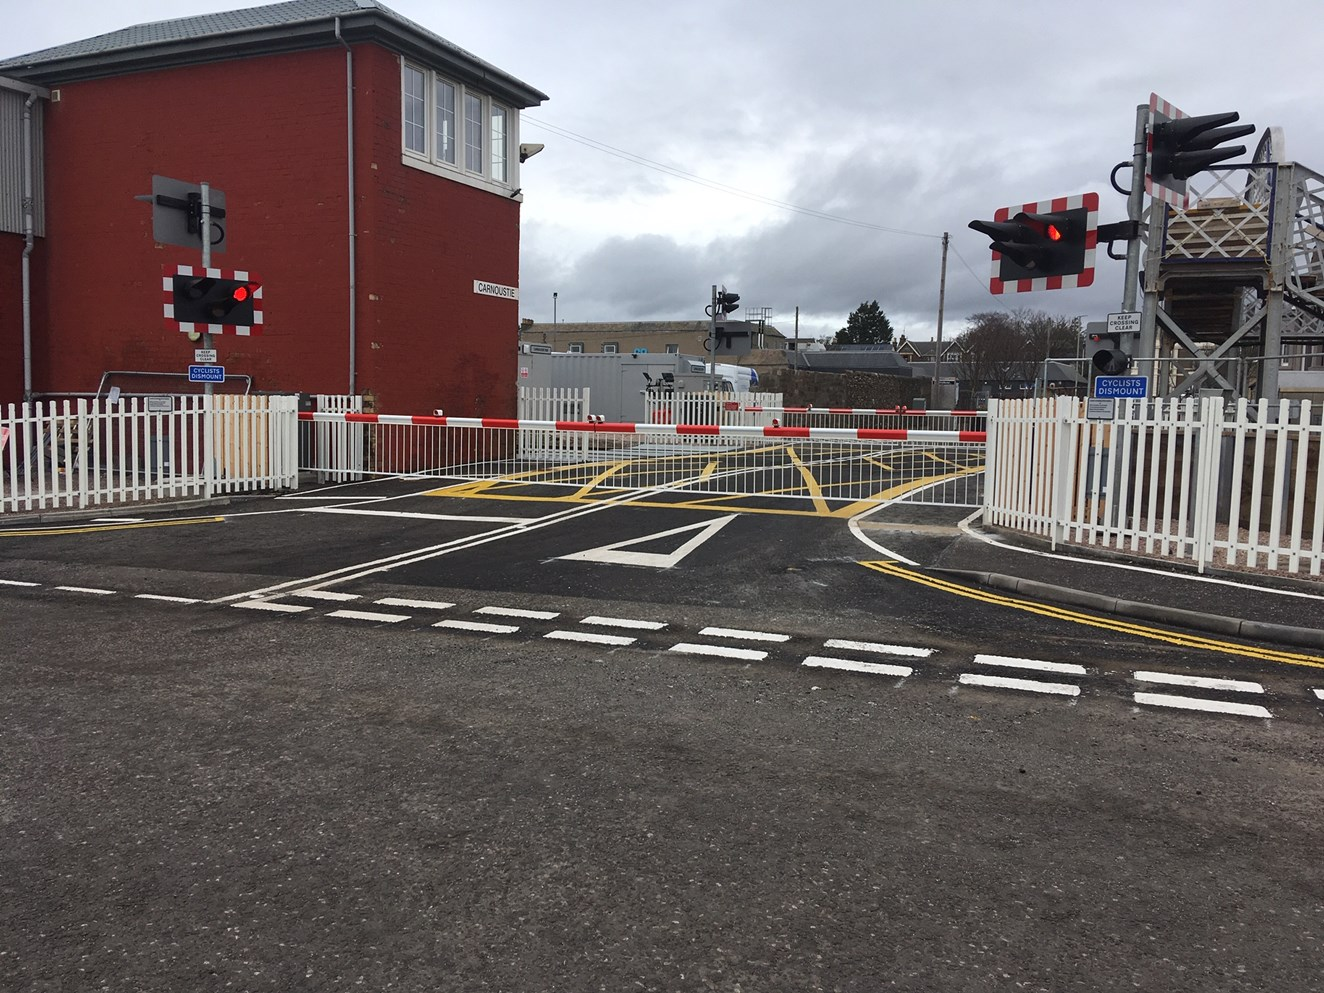 Positive signals for Carnoustie level crossing upgrade: IMG 1131